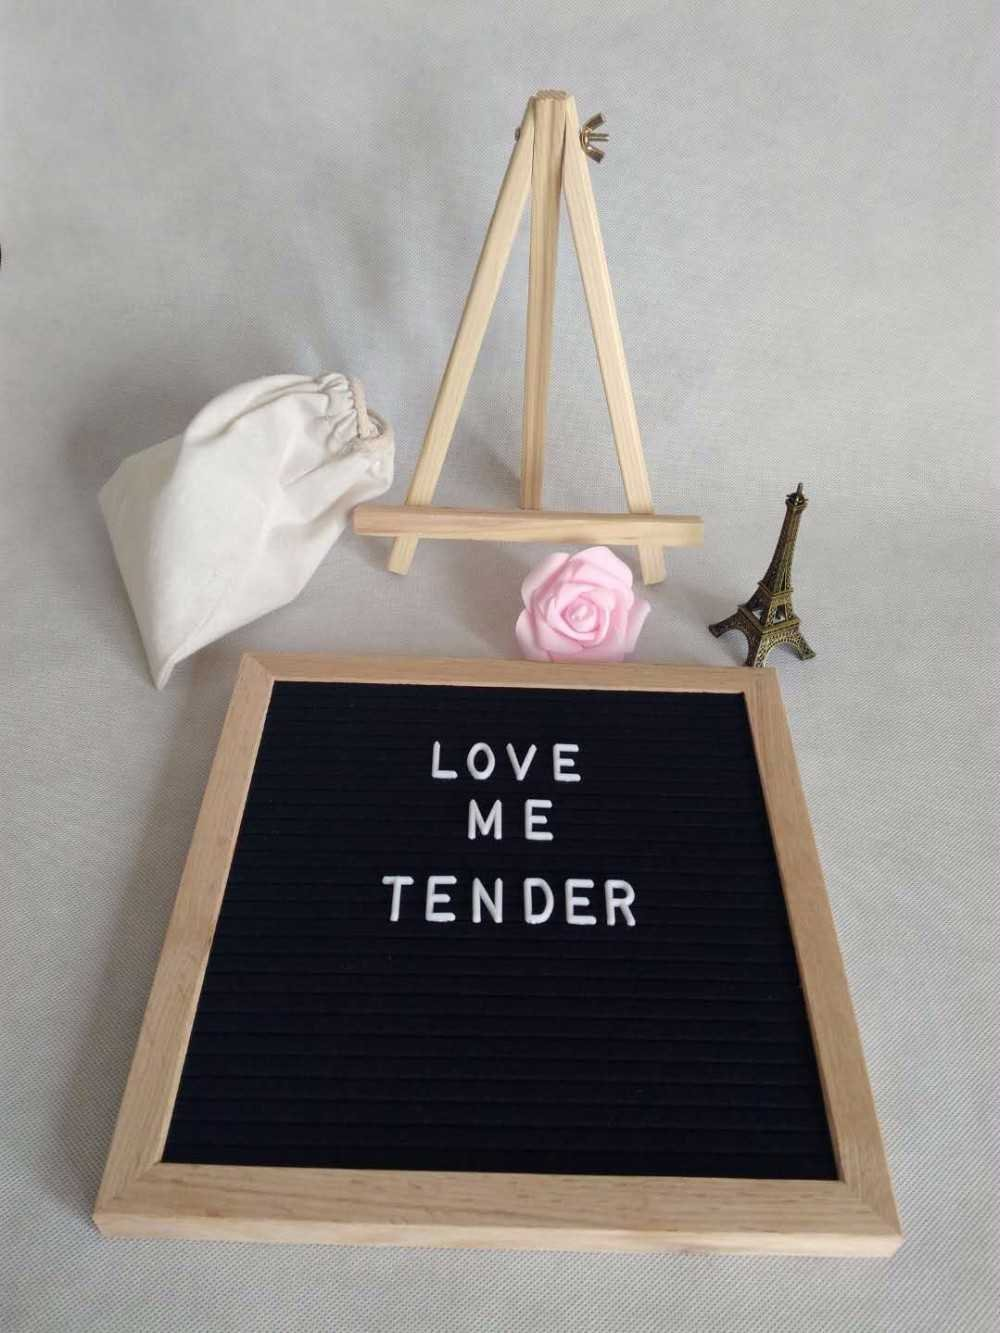 Black Felt Letter Board Message Board 10 by 10 with 290 White Changeable Letters and 150 Symbols Made from Recyclable Plastic Oak Frame Large Pieces Hanging Sign with Stand and Canvas Bag